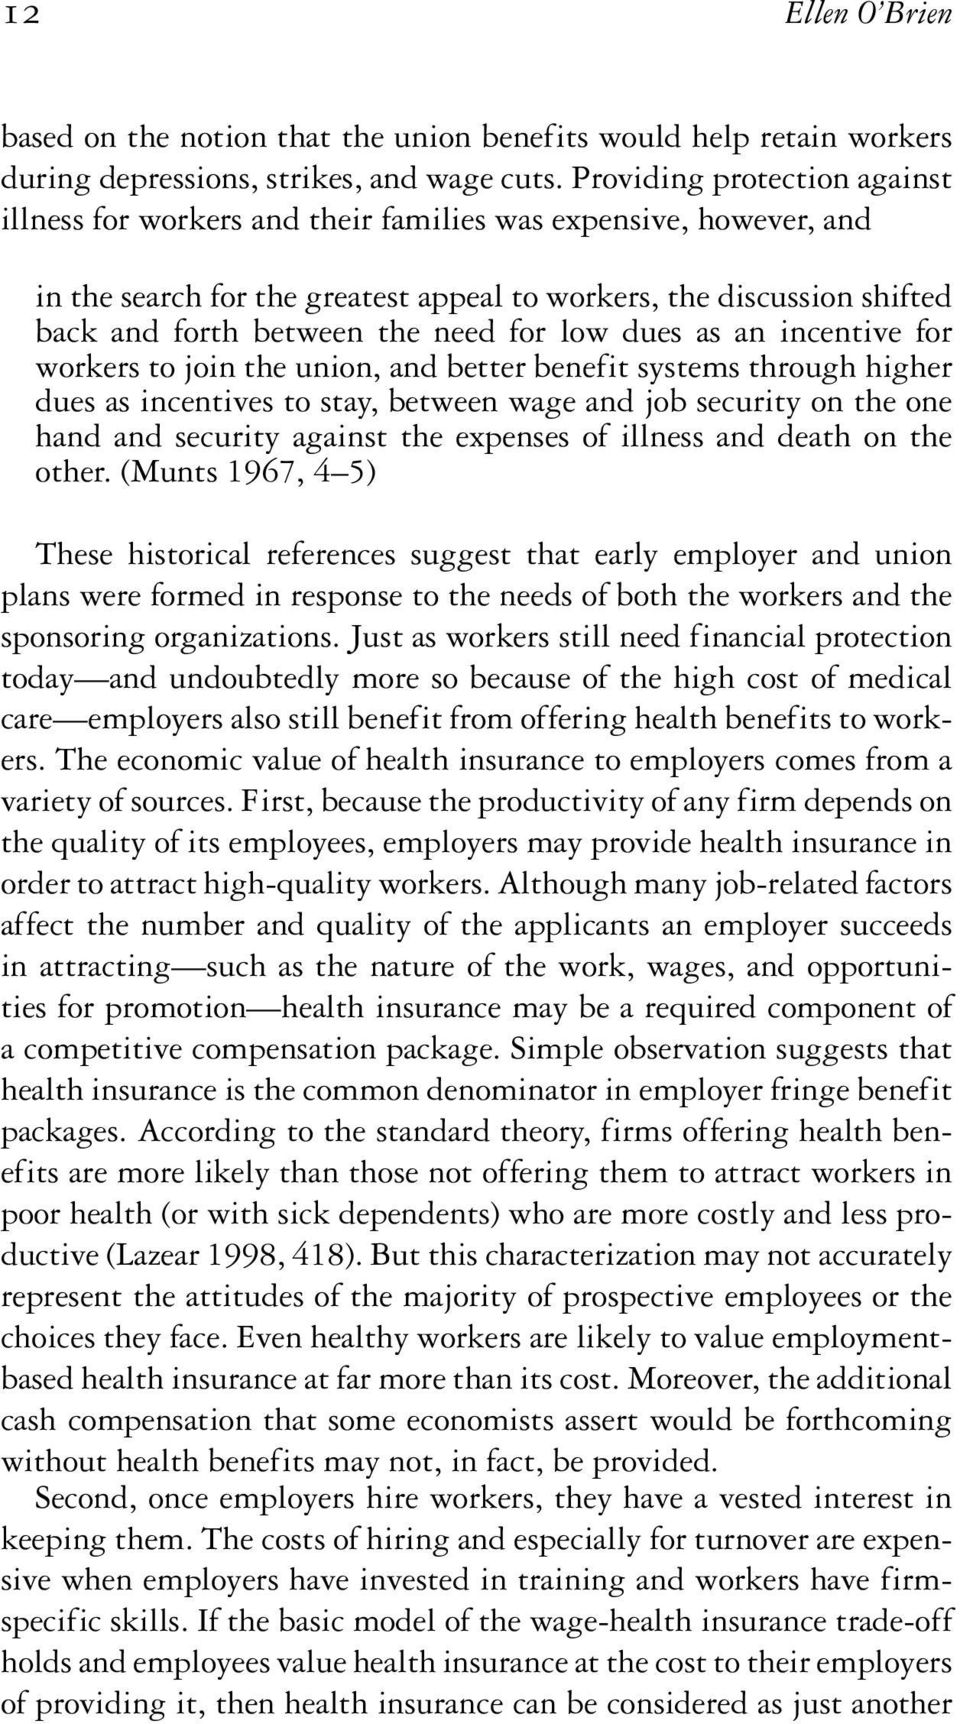 need for low dues as an incentive for workers to join the union, and better benefit systems through higher dues as incentives to stay, between wage and job security on the one hand and security